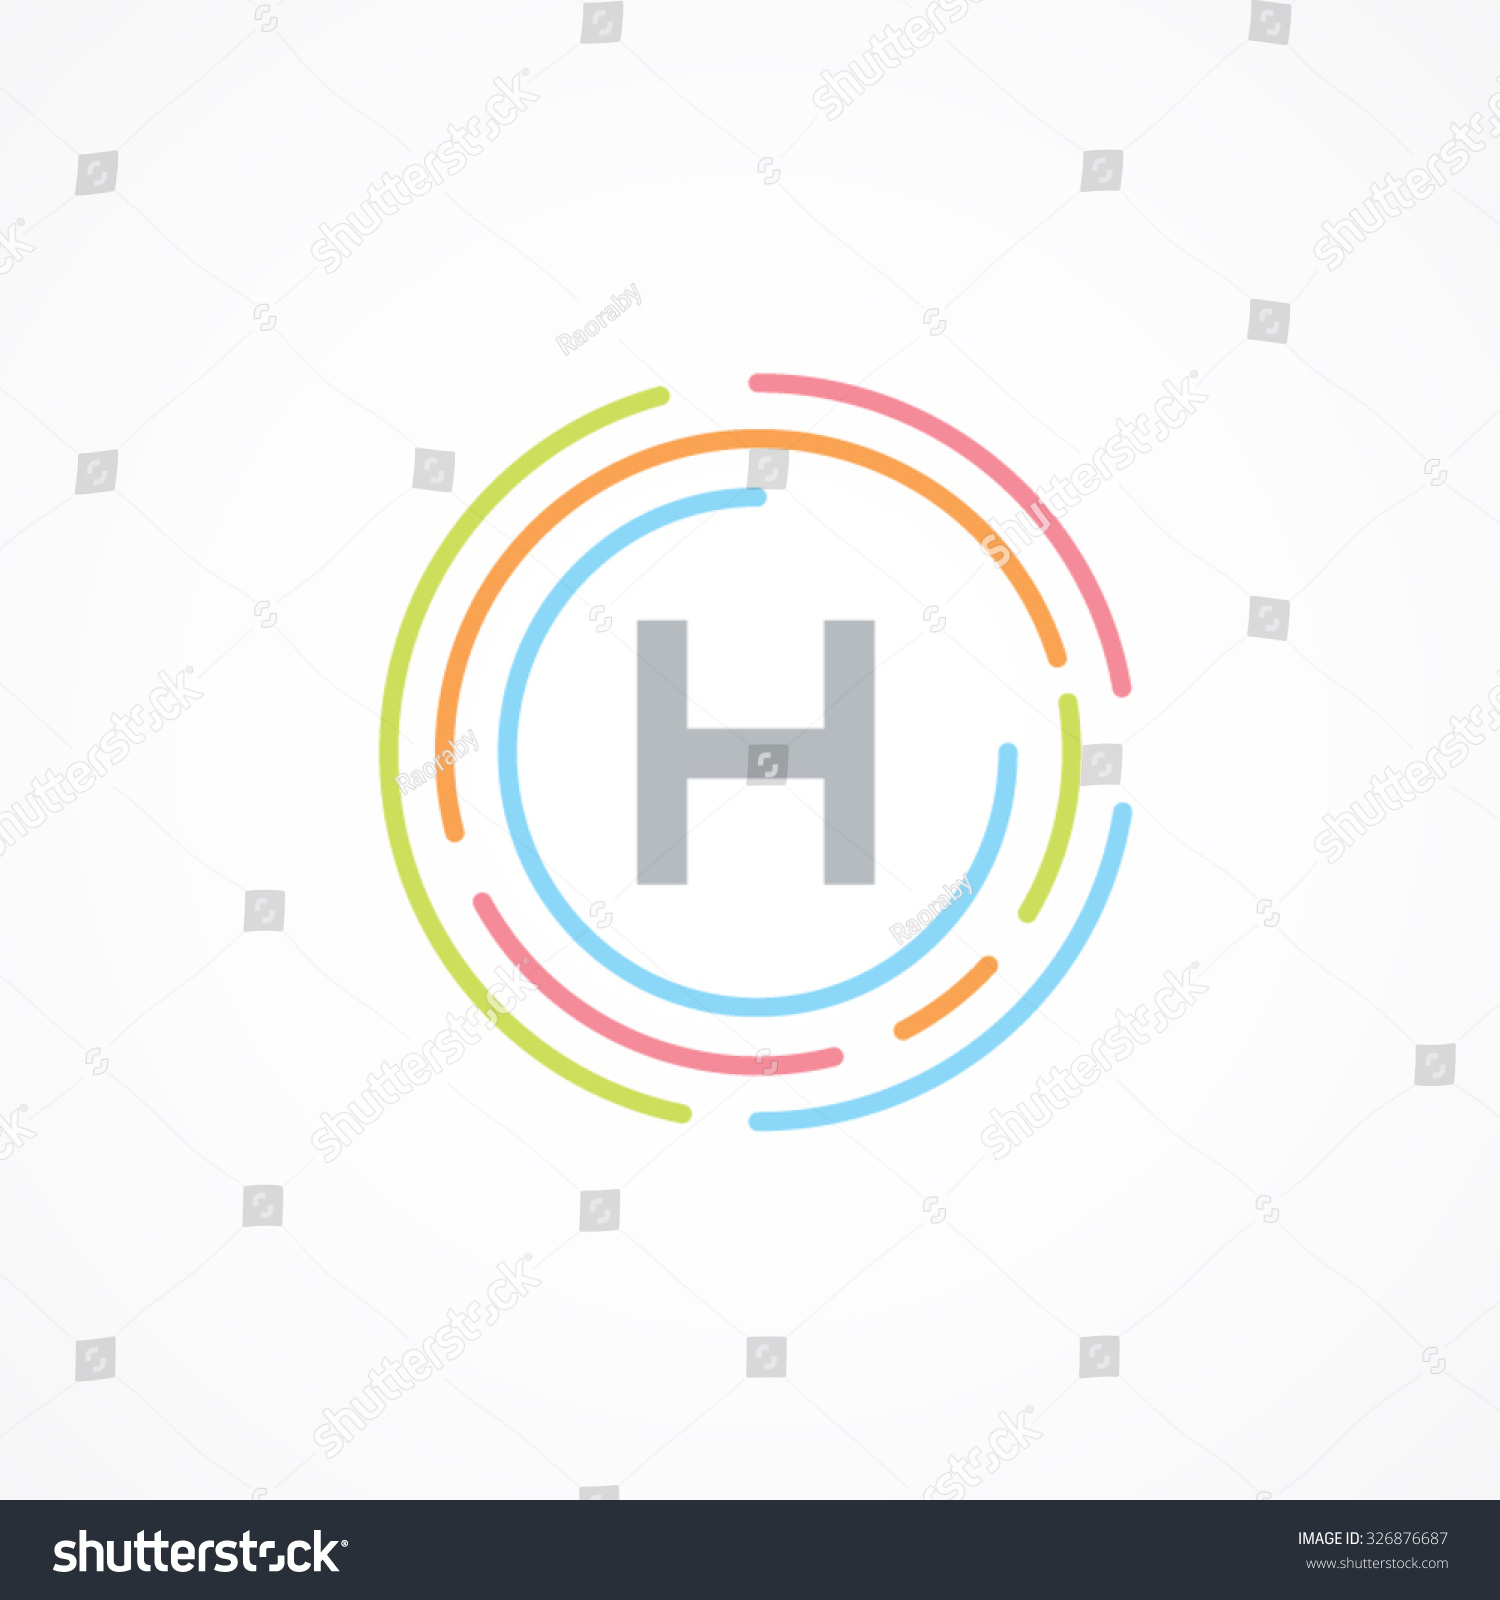 Letter H Logo Design Templatebusinesscolorful Creative